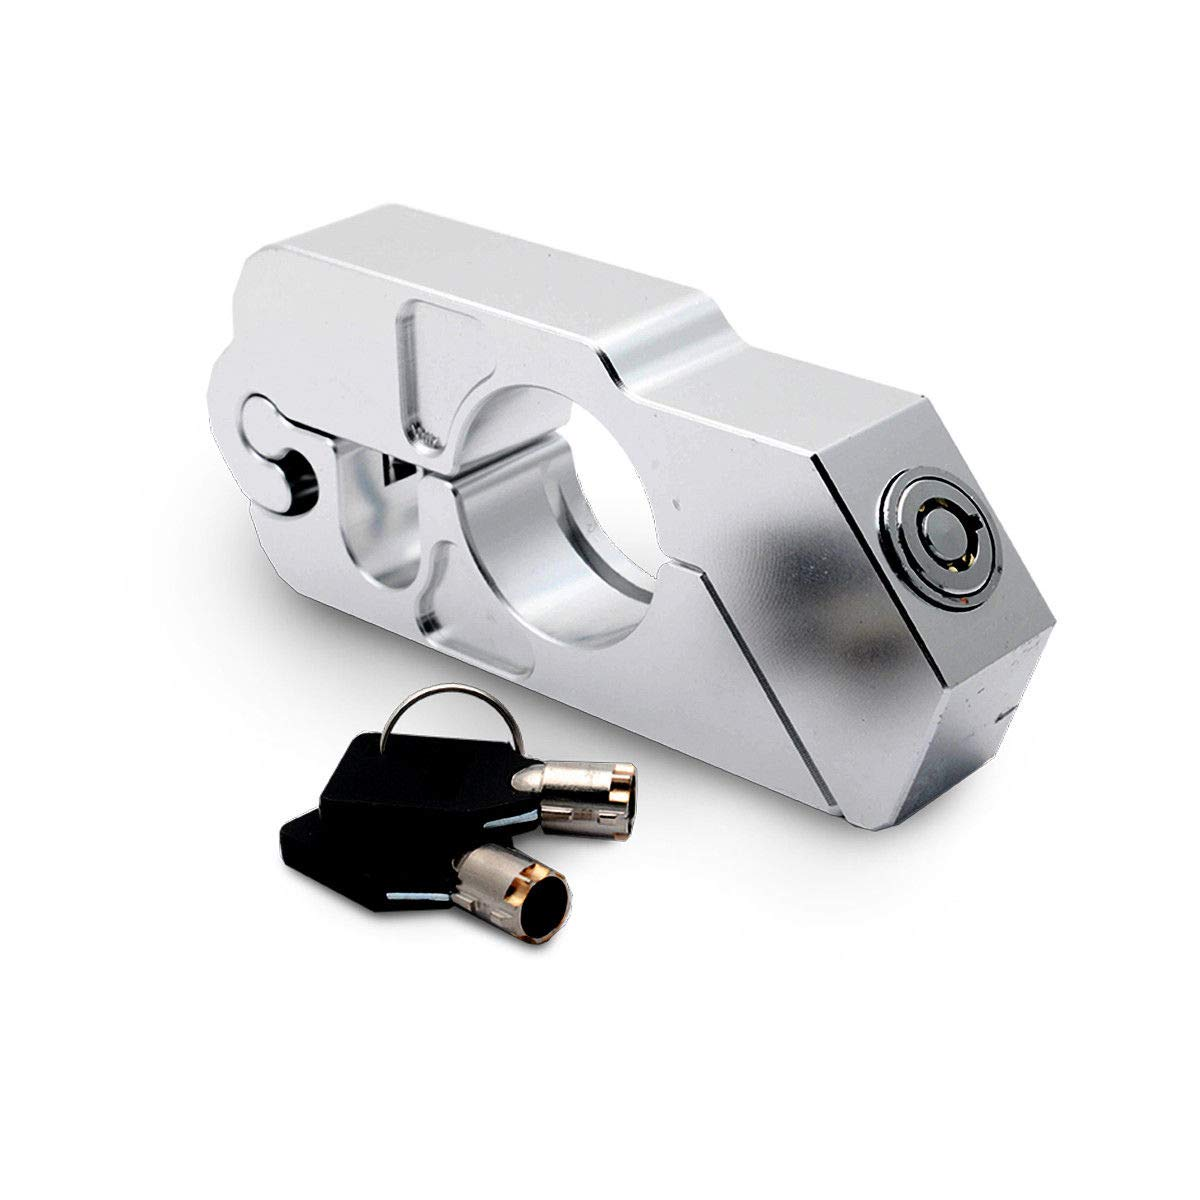 Soosee Motorcycle Lock - Universal  alloy CNC Motorcycle Handle Throttle Grip Security Lock with 2 Keys to Secure a Bike, Scooter, Moped or ATV in Under 5 Seconds(Silver)